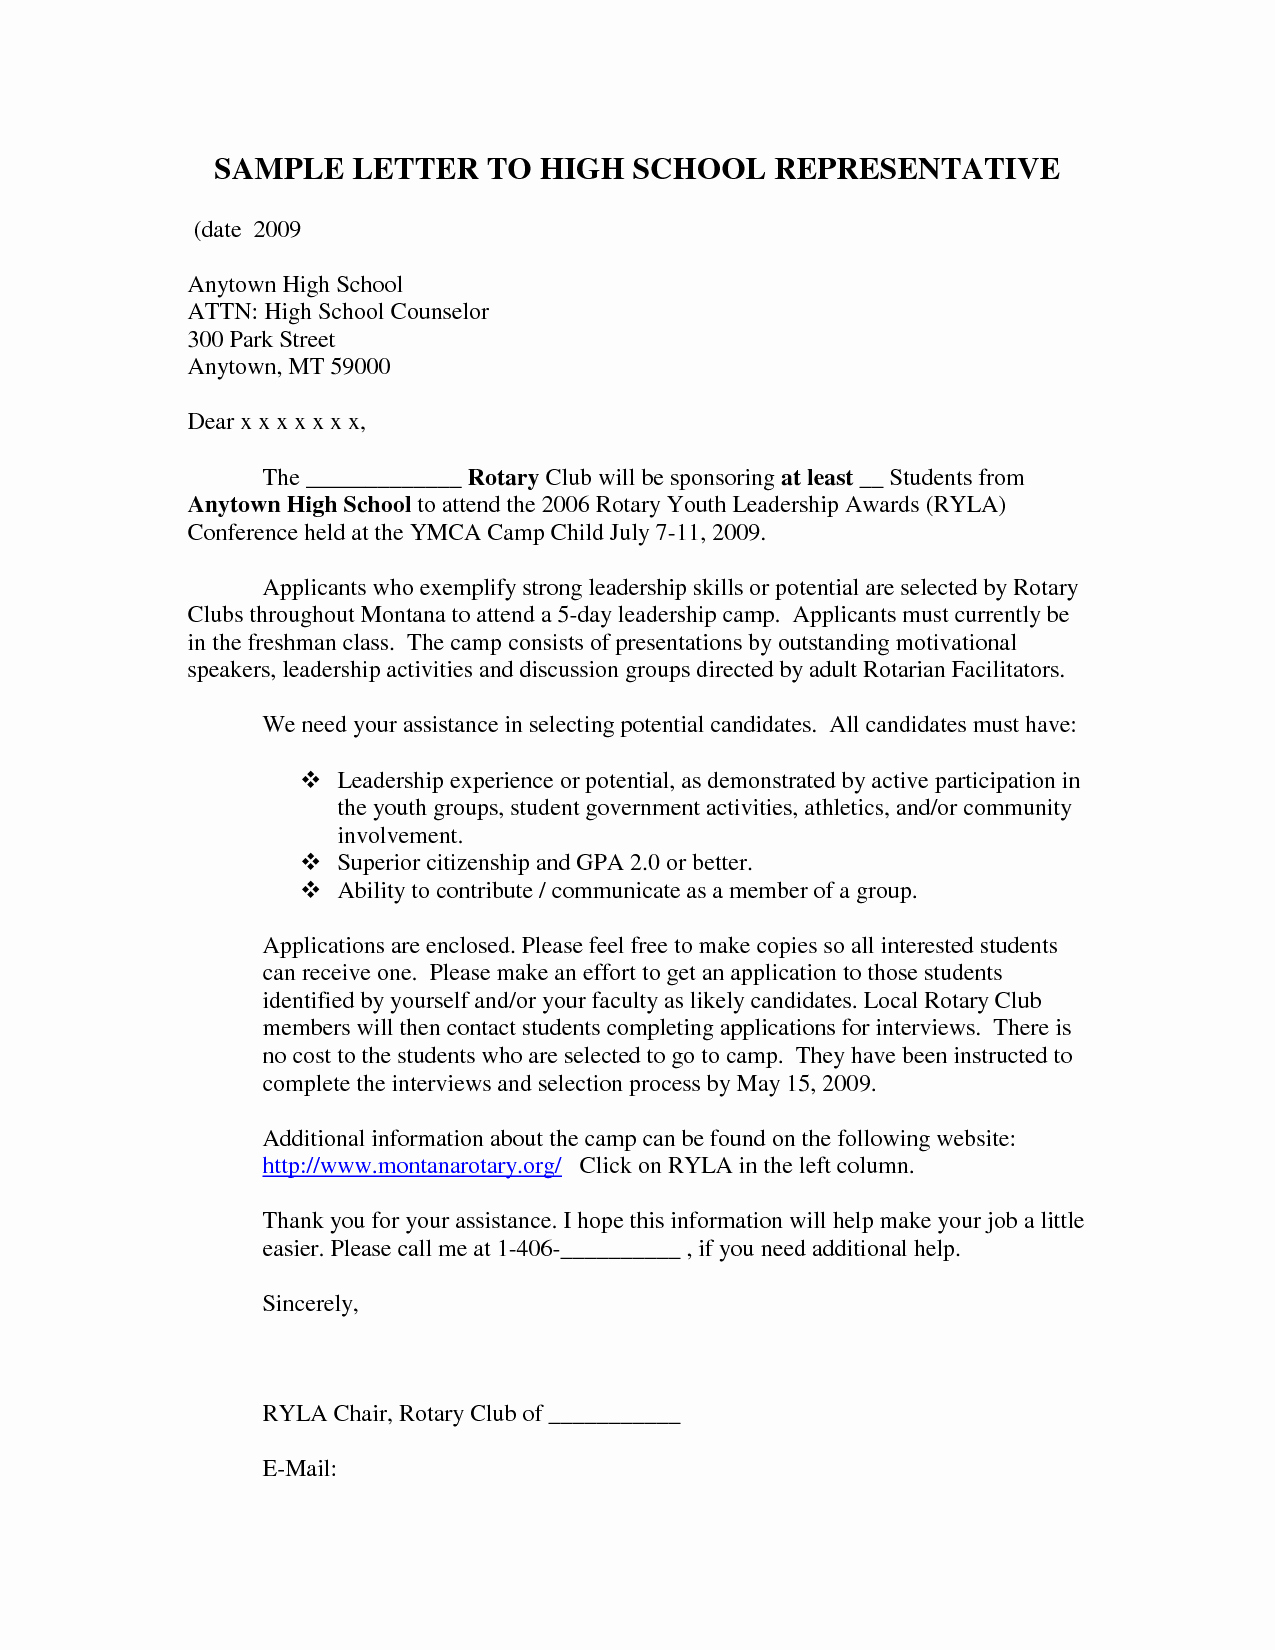 Cover Letter Examples for Students Unique Sample Cover Letter for High School Student with No Work